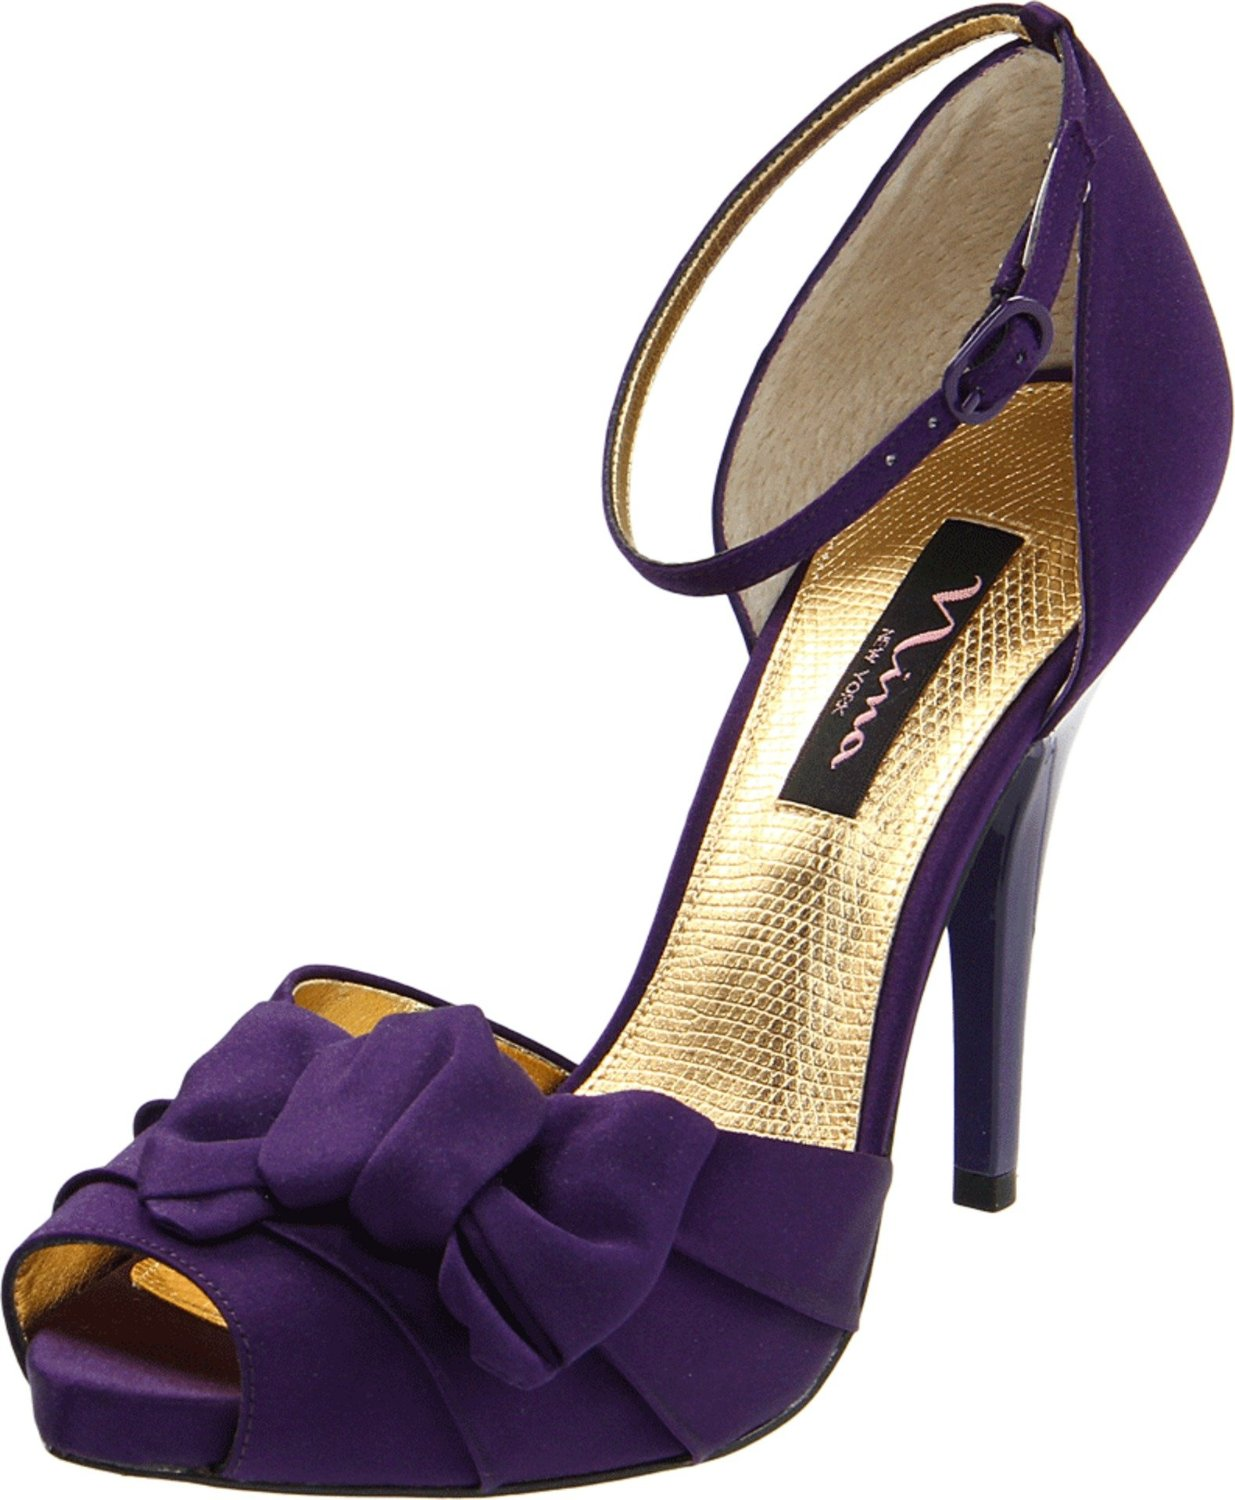 Wedding Cheap Prom Shoes bridal prom special occasion platform pump heels shoe purple grad wedding shoe